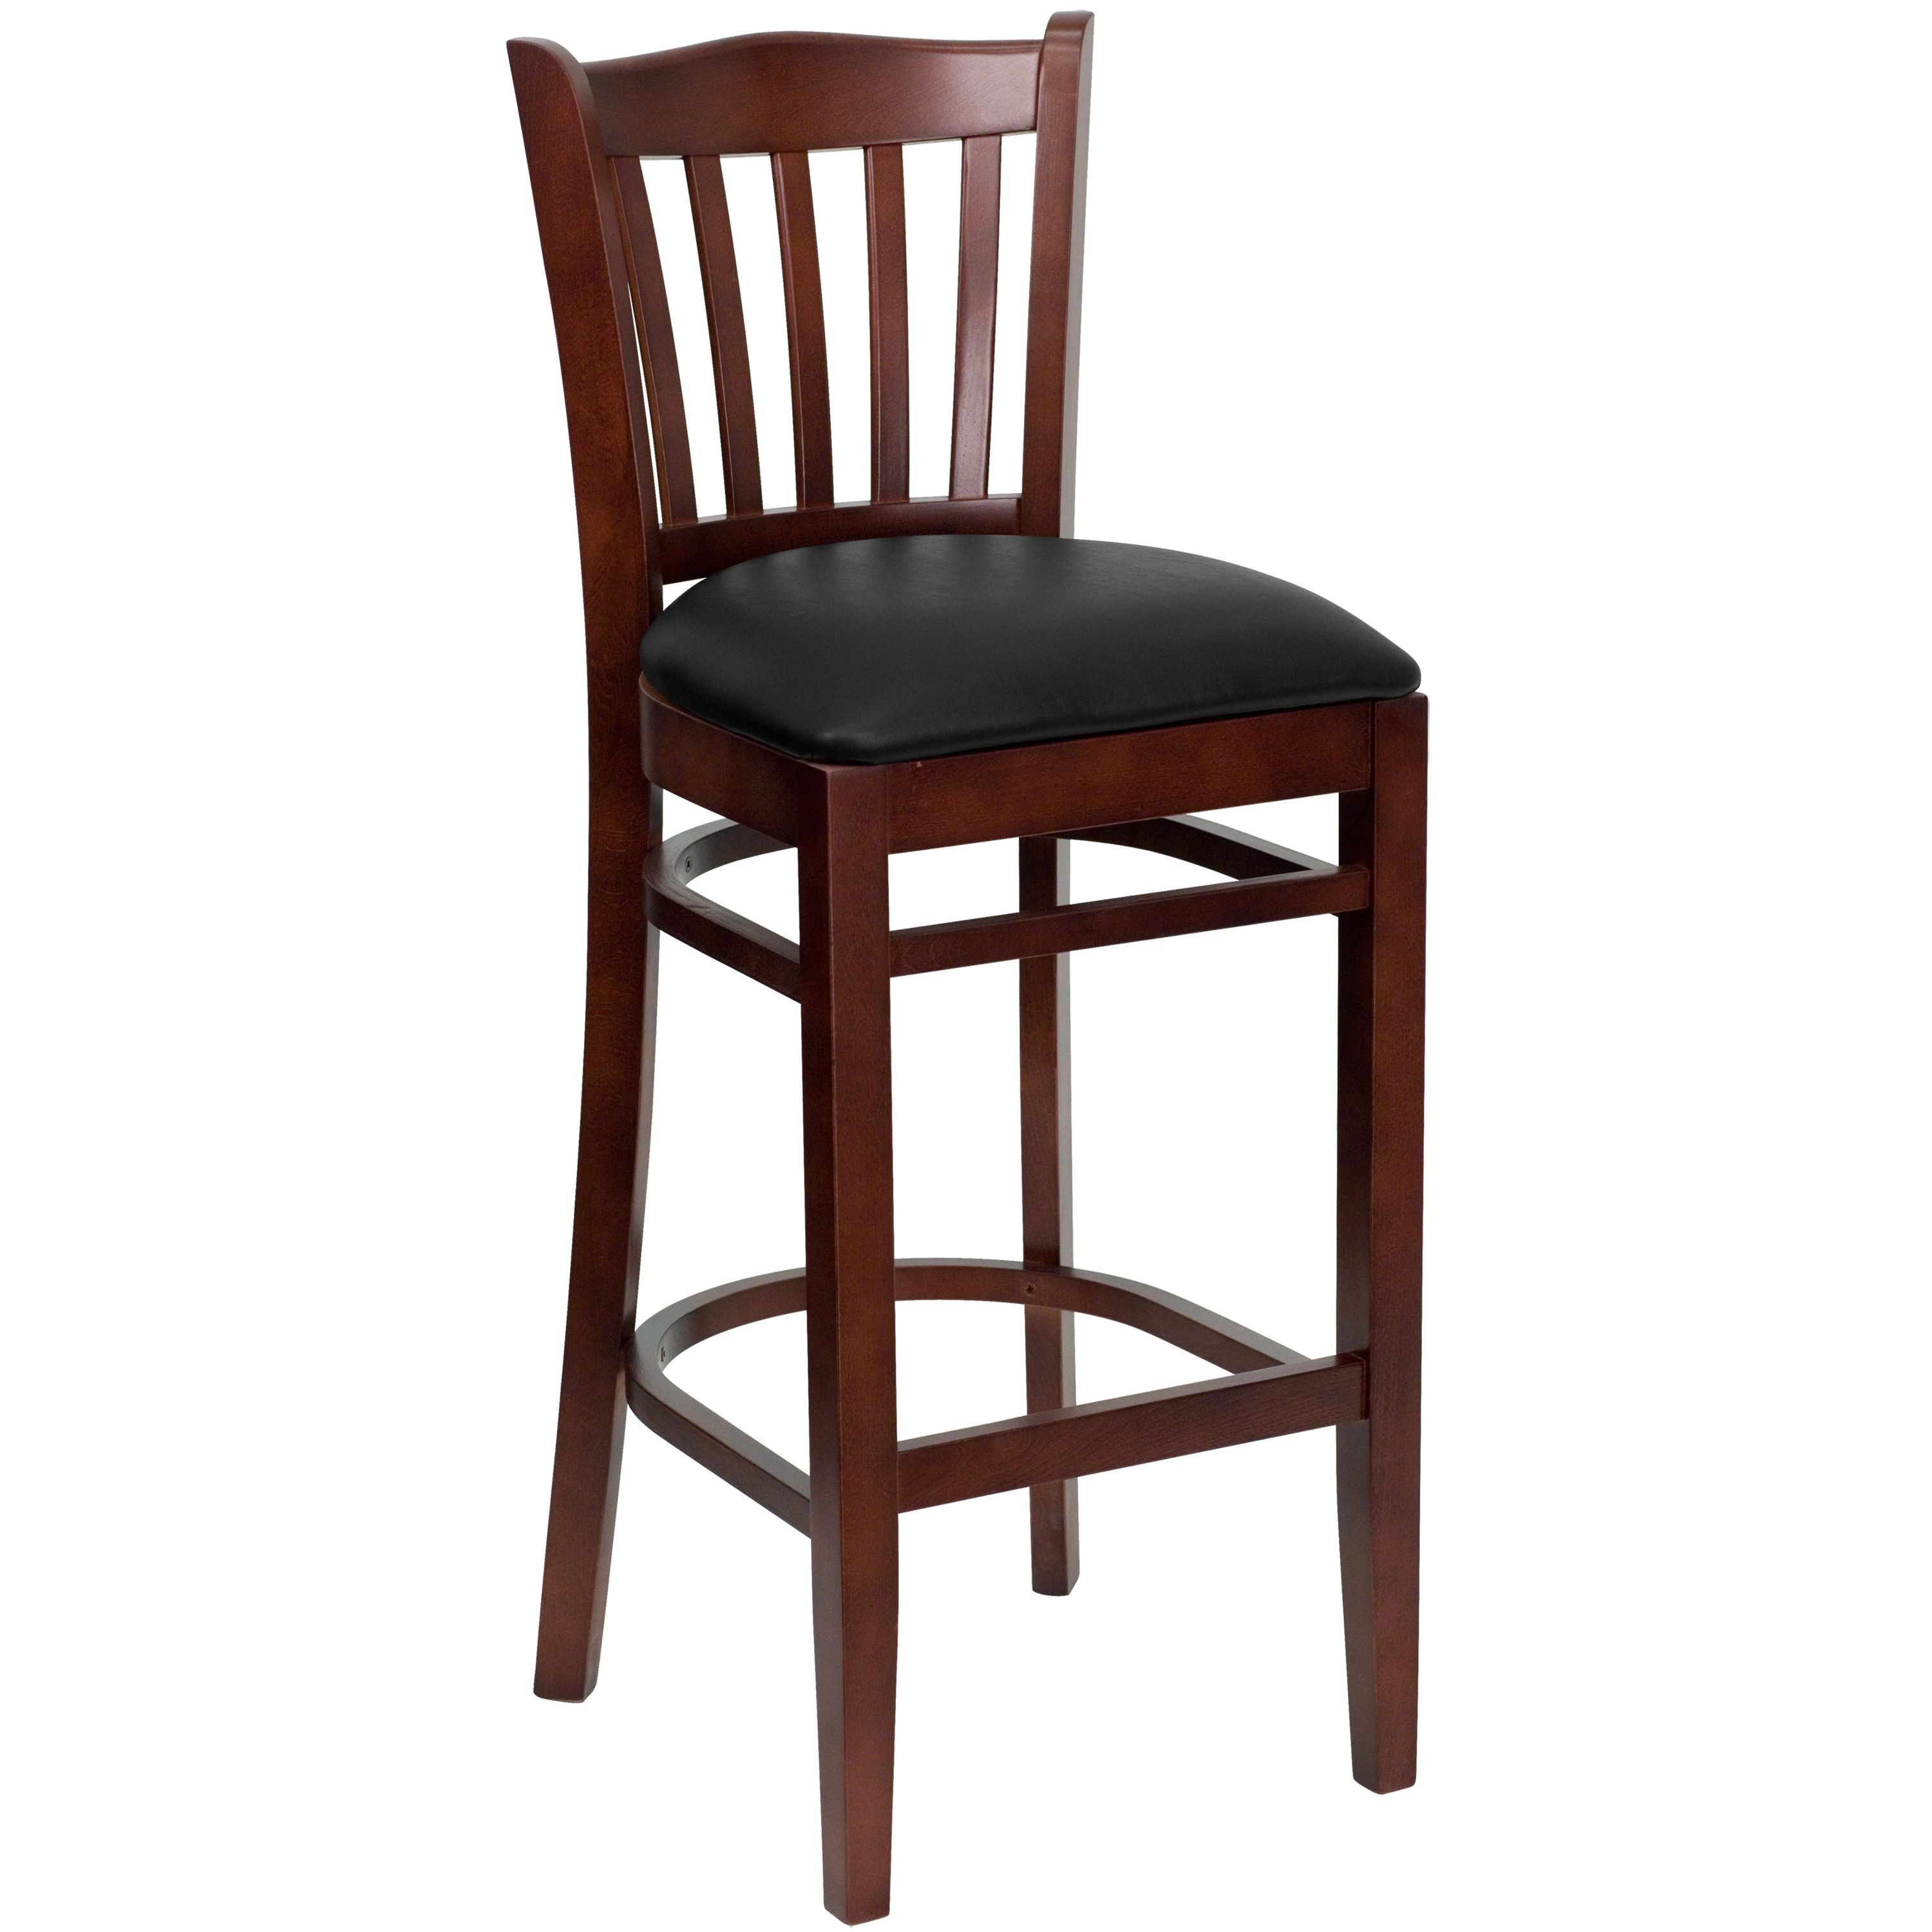 Vertical Slat Back Mahogany Wood Bar Stool with Black Vinyl Seat